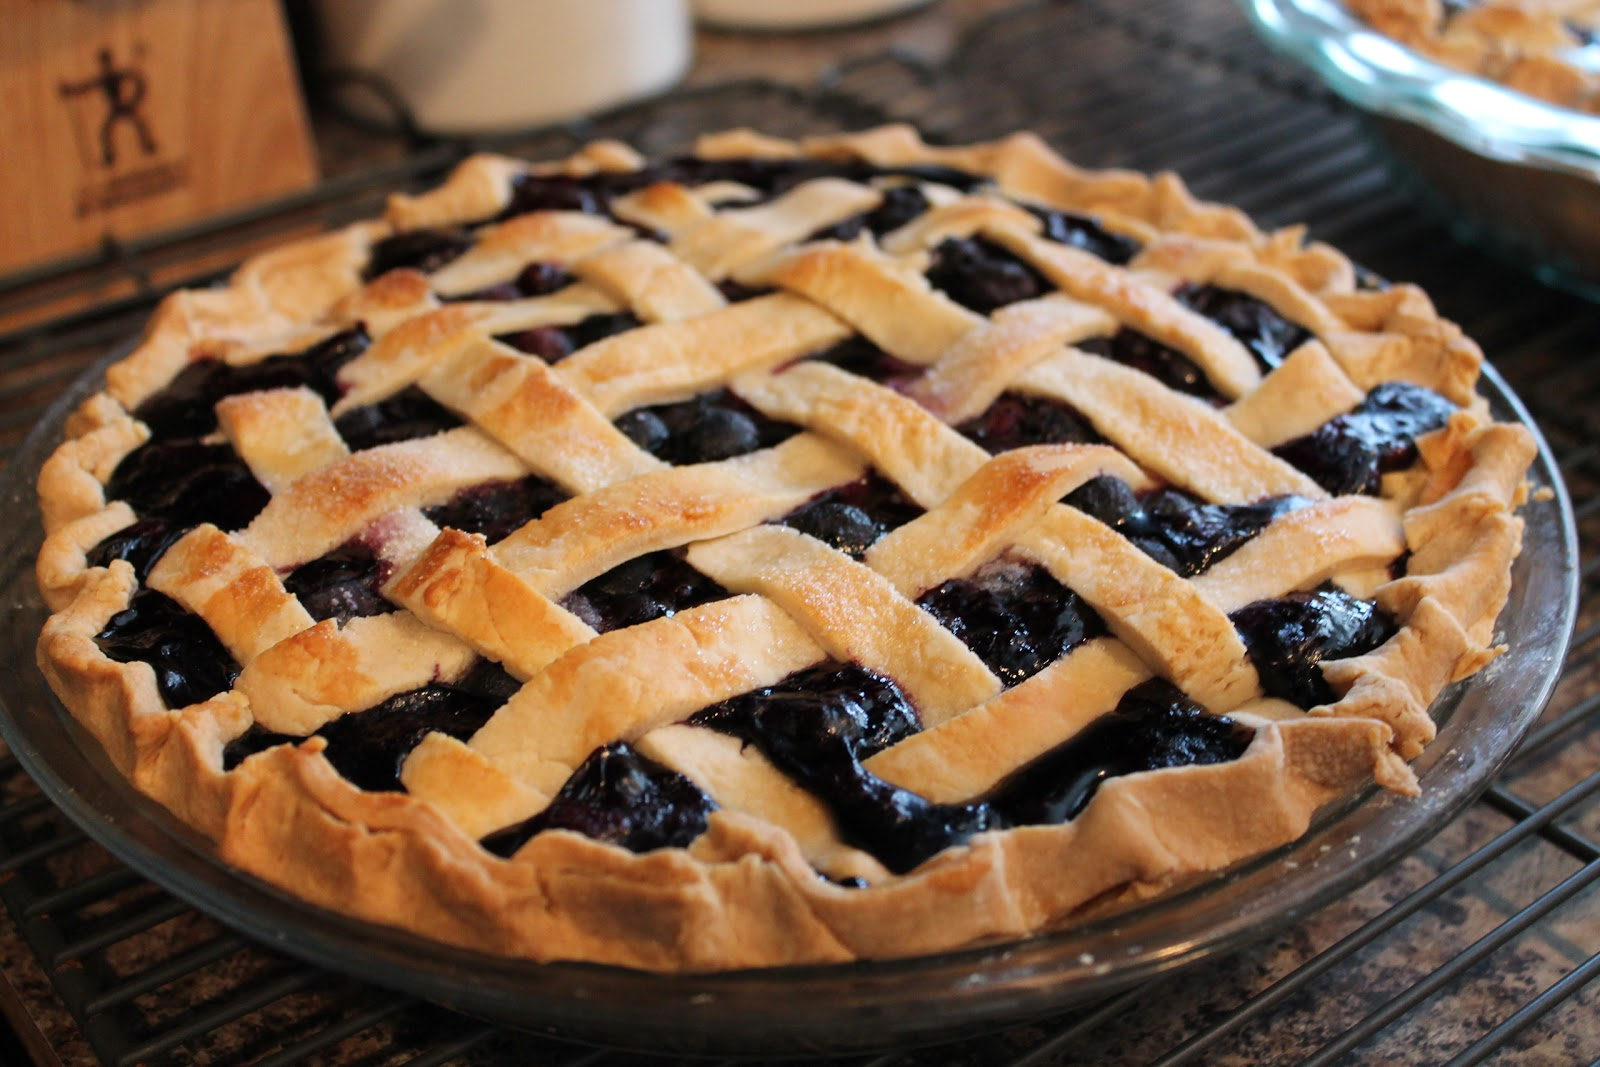 Jane39s Girl Designs Homemade Blueberry Pie noseriously